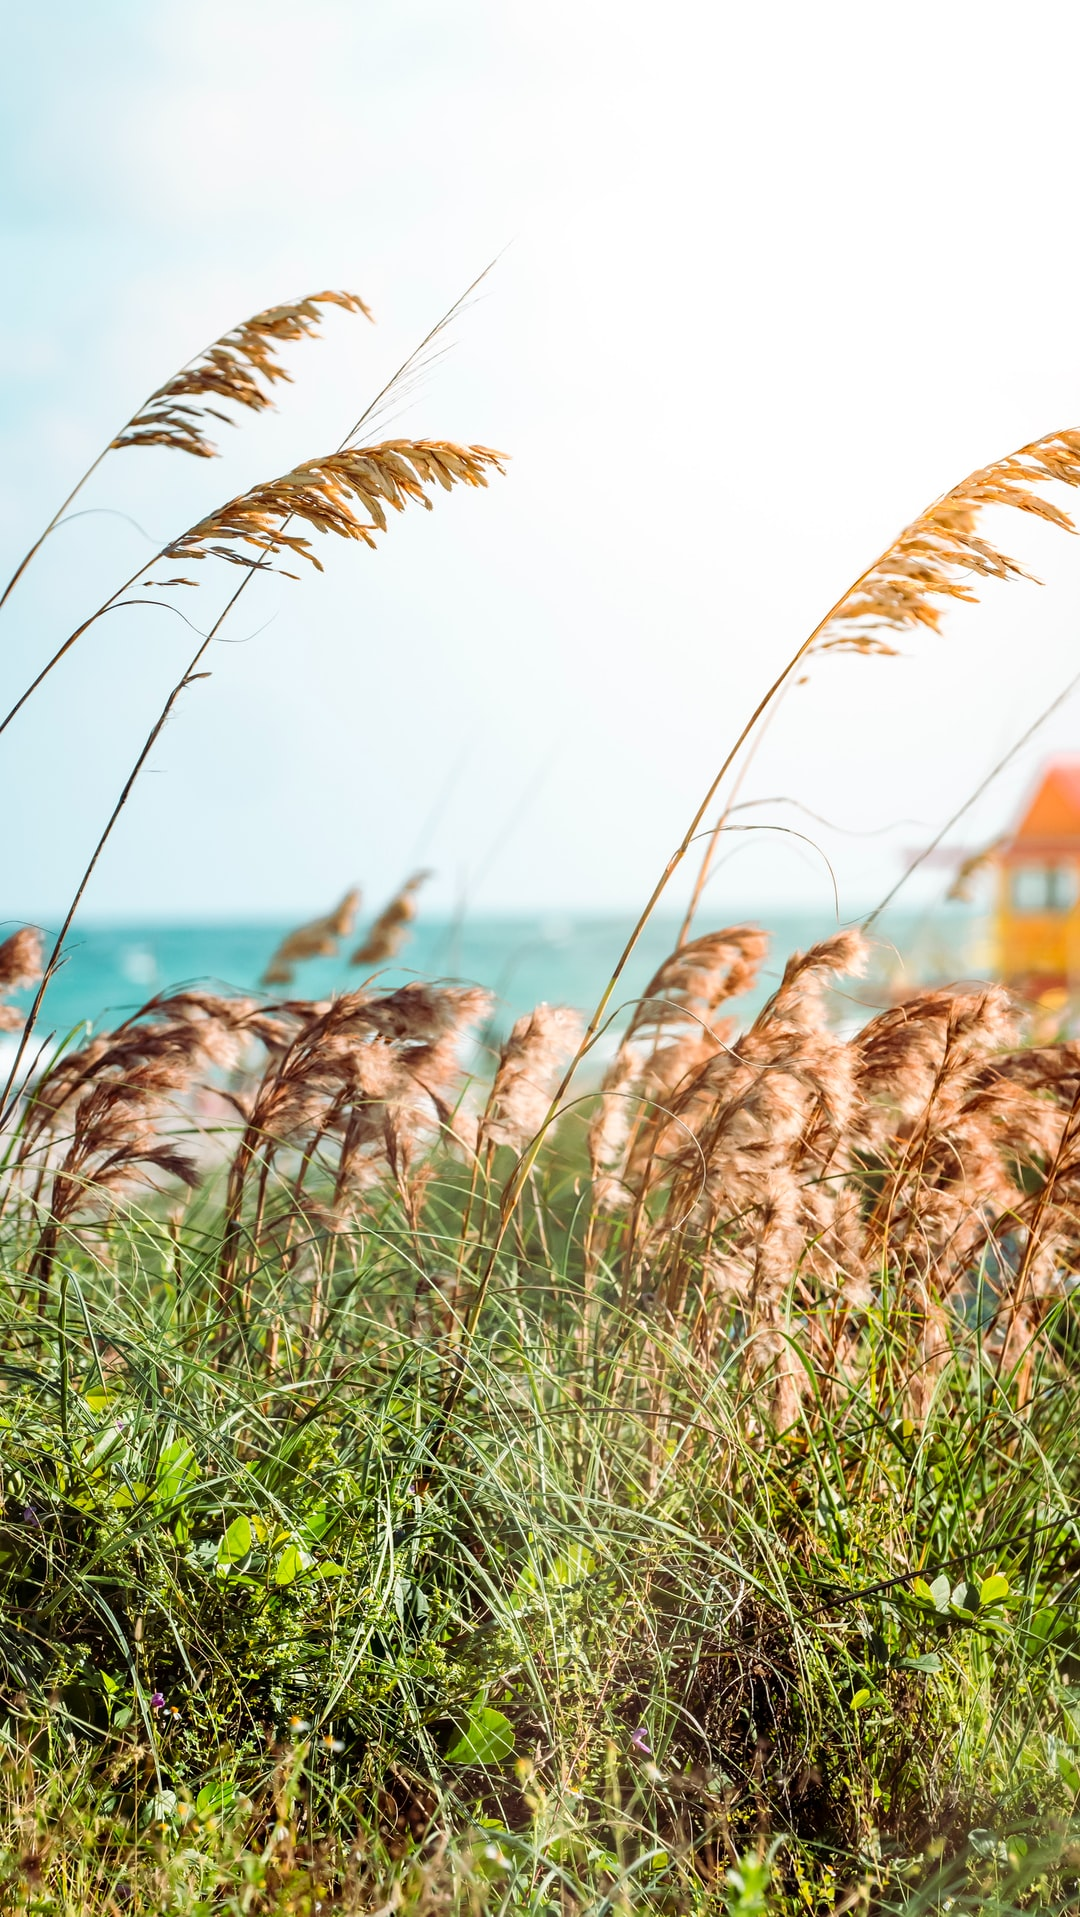 A summery photograph of the grass next to a warm Atlantic on South Beach in Miami.